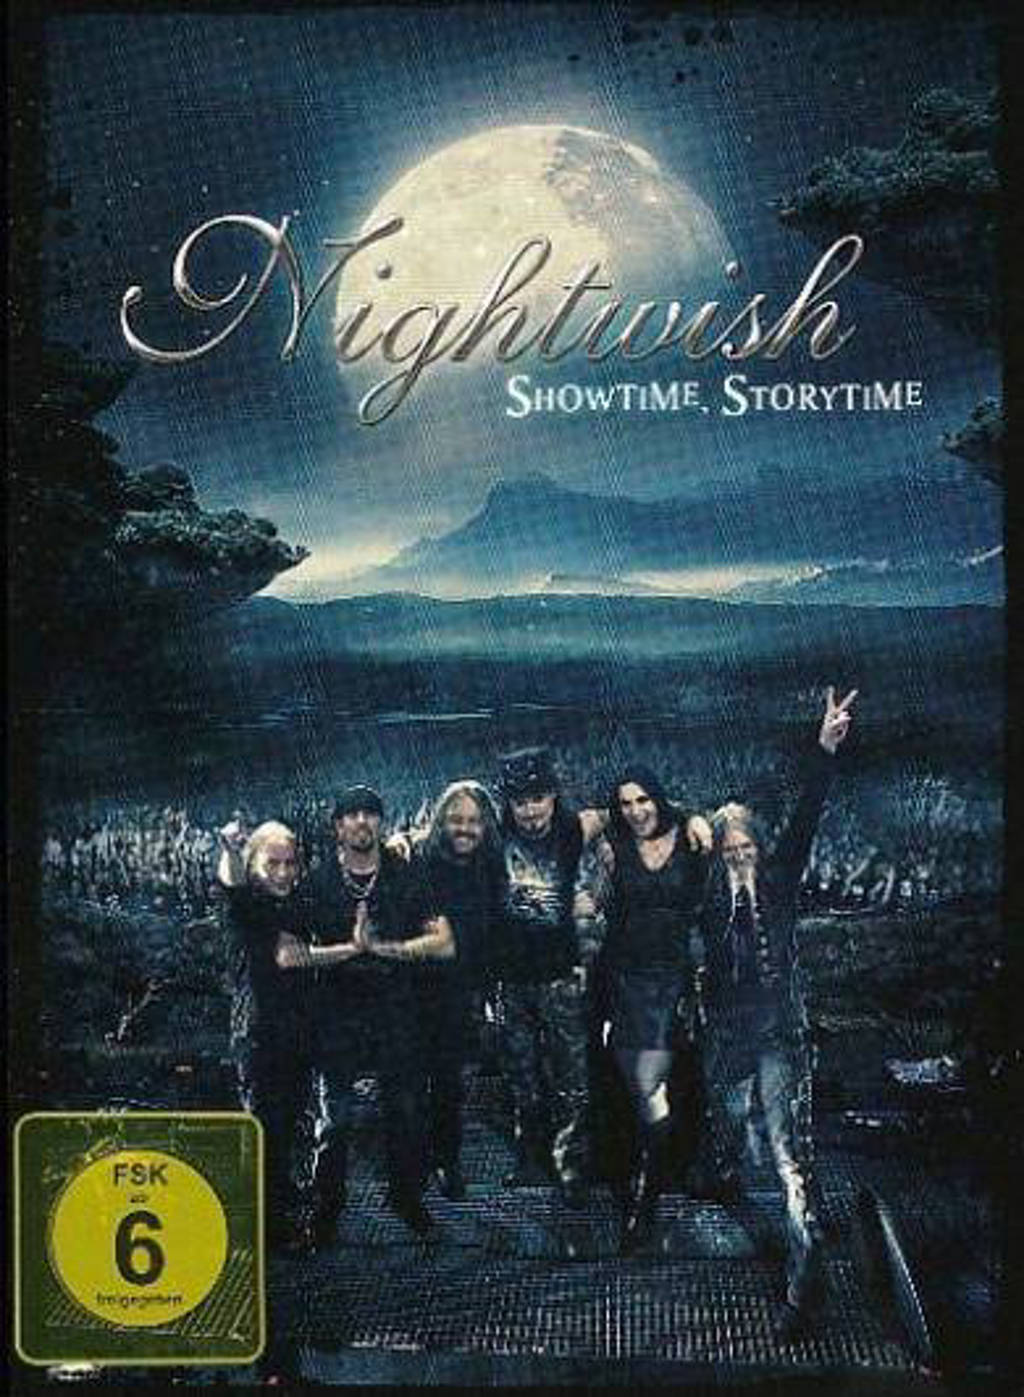 Nightwish - Showtime Storytime (DVD)